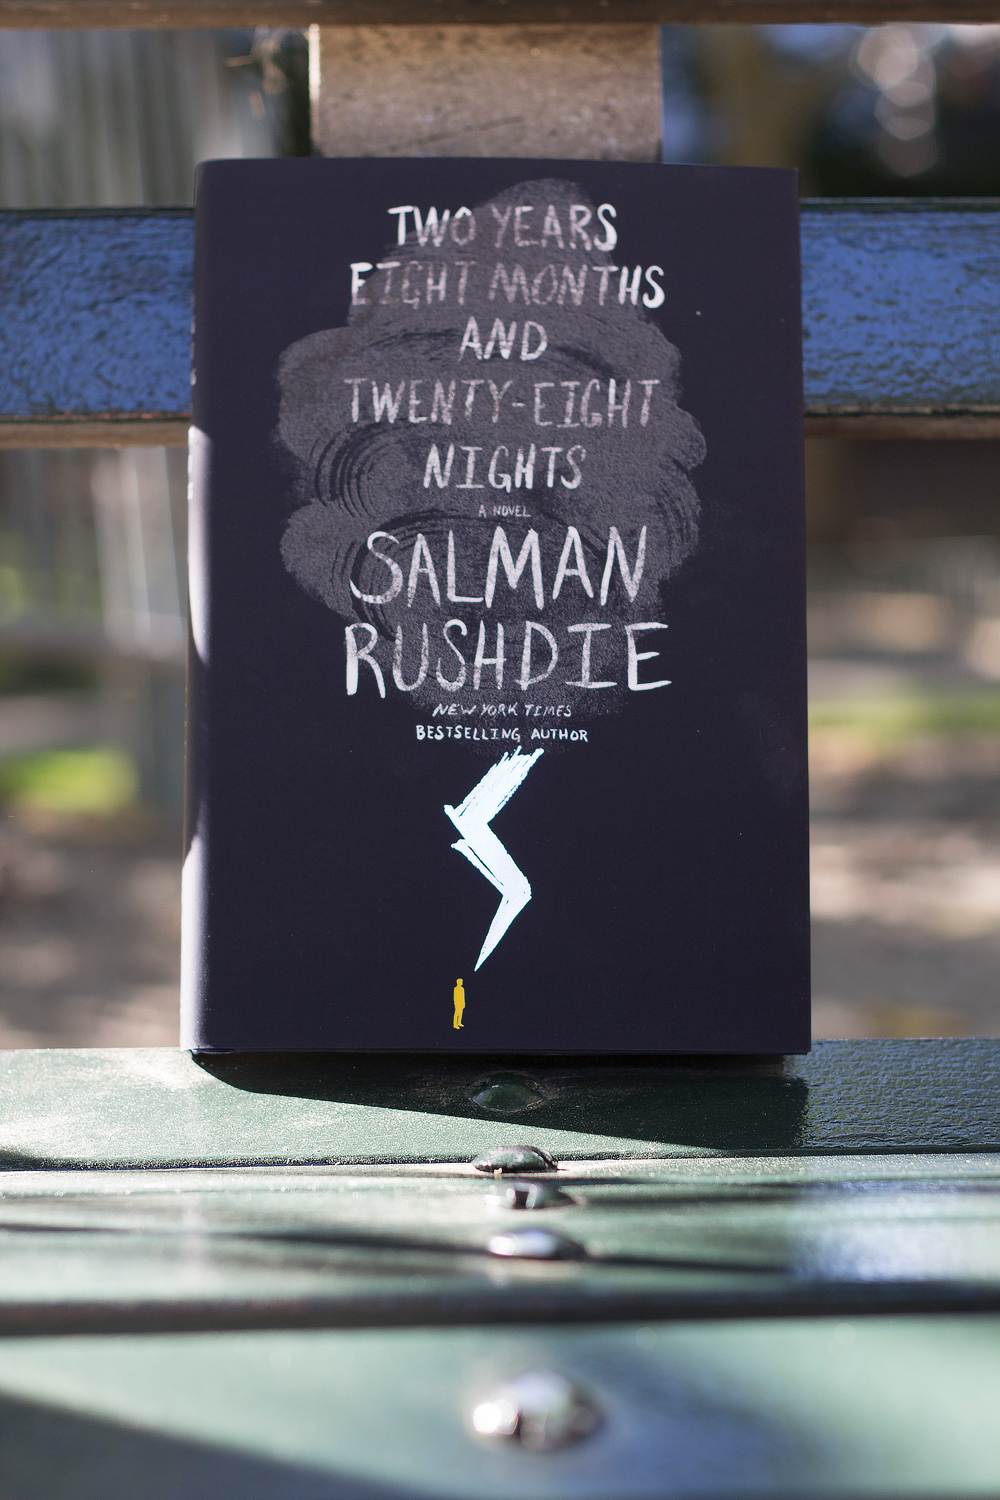 Two Years Eight Months and Twenty Eight Nights Salman Rushdie